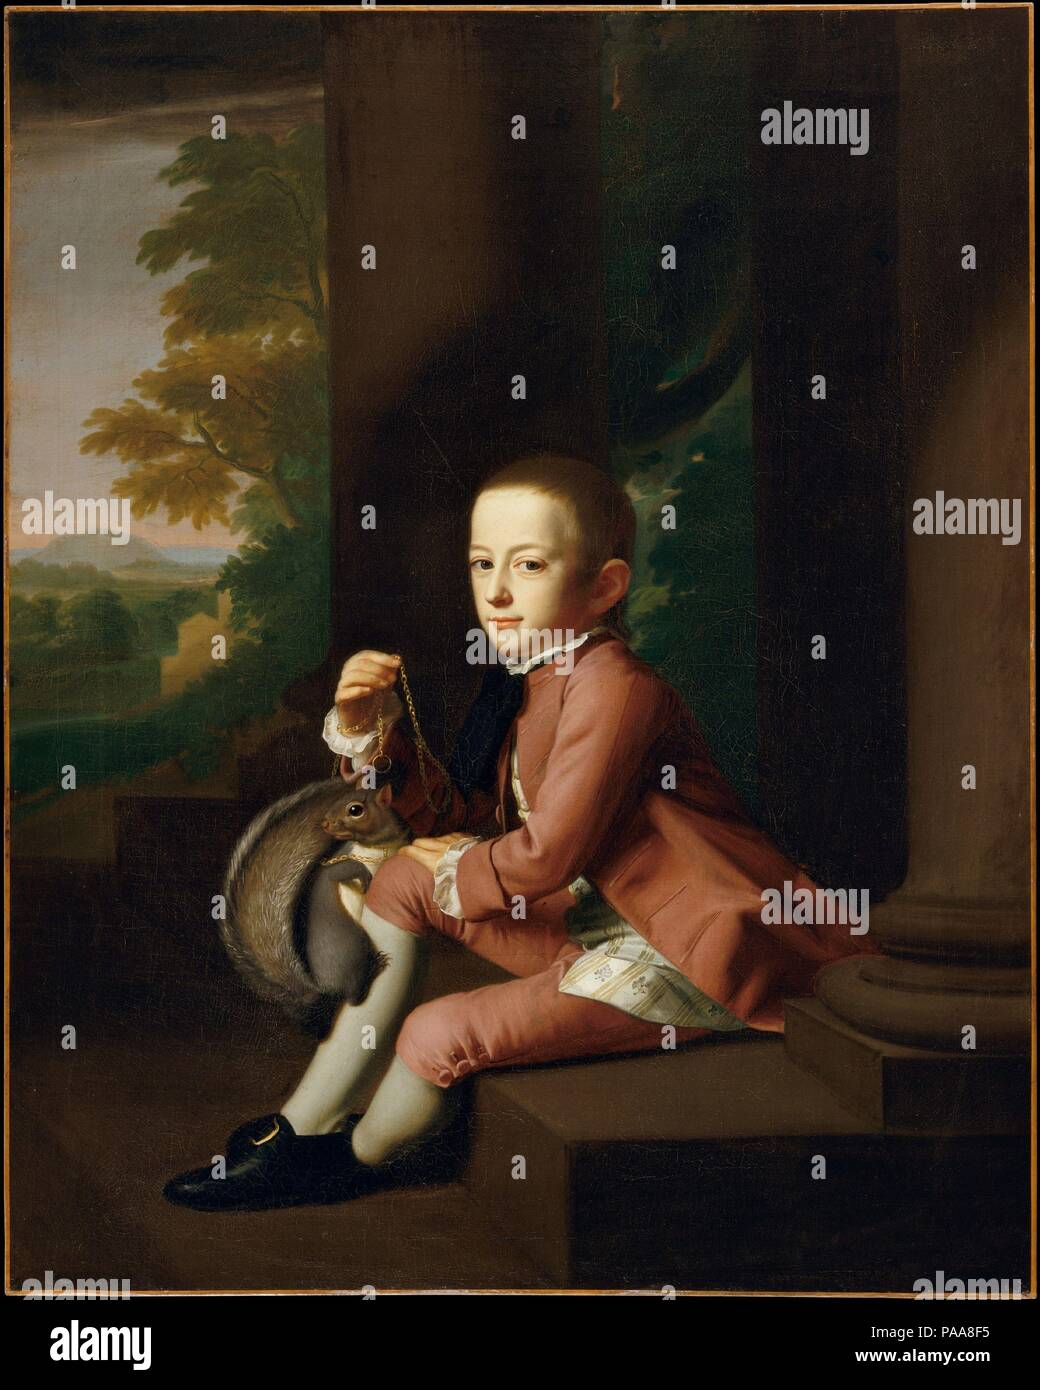 Daniel Crommelin Verplanck. Artist: John Singleton Copley (American, Boston, Massachusetts 1738-1815 London). Dimensions: 49 1/2 x 40 in. (125.7 x 101.6 cm). Date: 1771.  Daniel Crommelin Verplanck (1762-1834) was born in New York and spent the early part of his life in the family home on lower Wall Street. He was the eldest son of Judith Crommelin and Samuel Verplanck (39.173). While attending Columbia College (formerly King's College), he married Elizabeth Johnson, daughter of the president of Columbia. They had two children. Following her death in 1789, Verplanck married Ann Walton, with wh - Stock Image